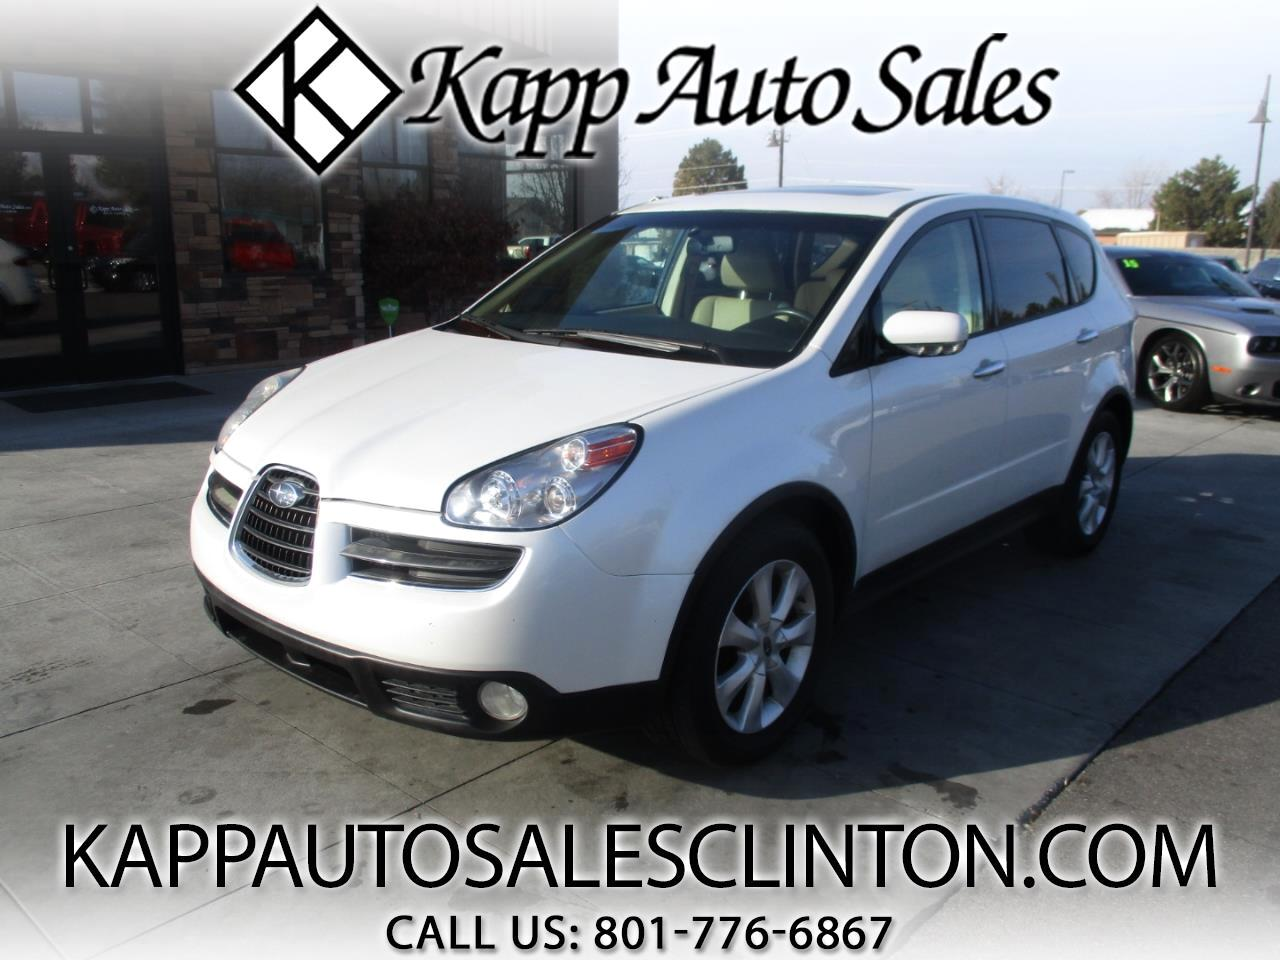 Subaru B9 Tribeca AWD 4dr 5-Pass Ltd Beige Int 2007